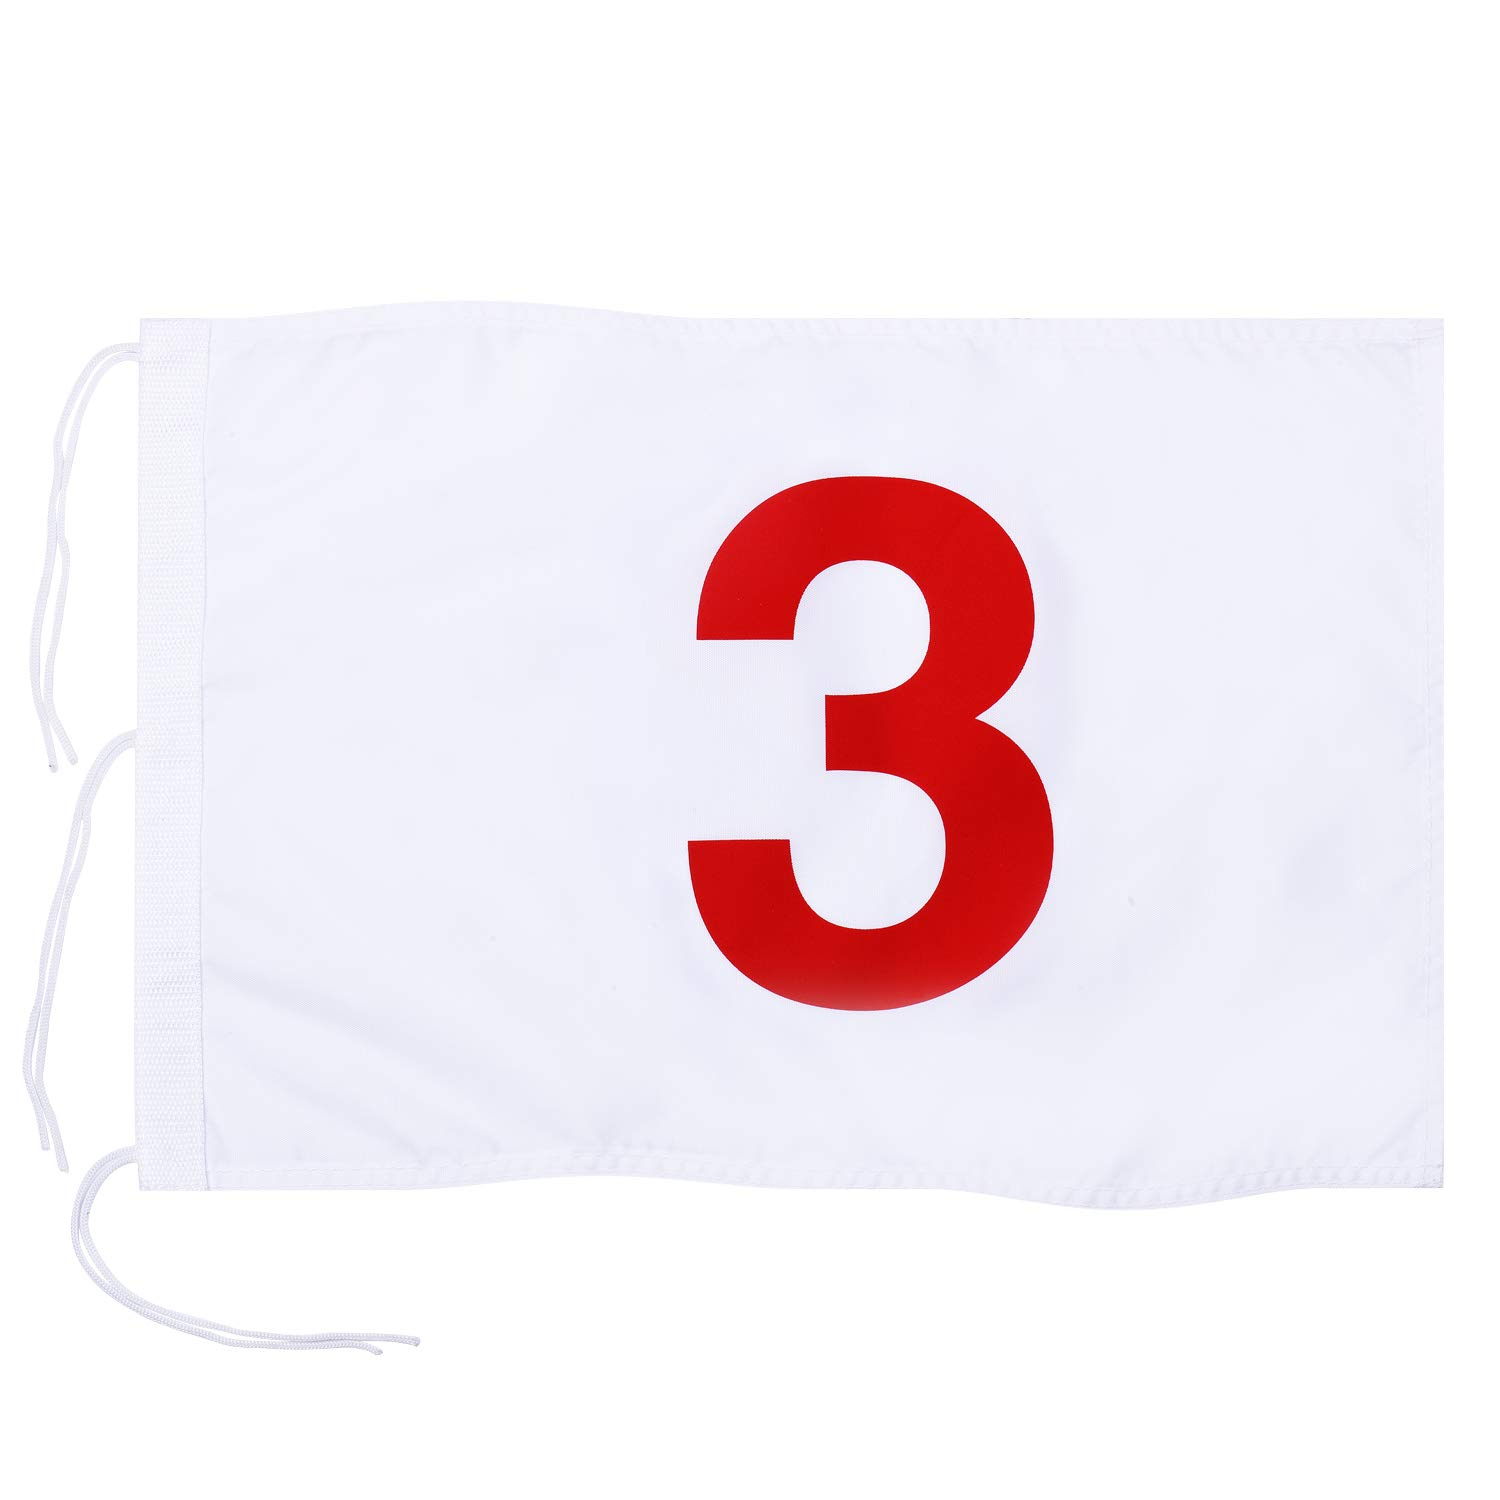 KINGTOP Numbered Golf Flag with Secure Strings, 13'' L x 20'' W, 420D Nylon, White 3 by KINGTOP